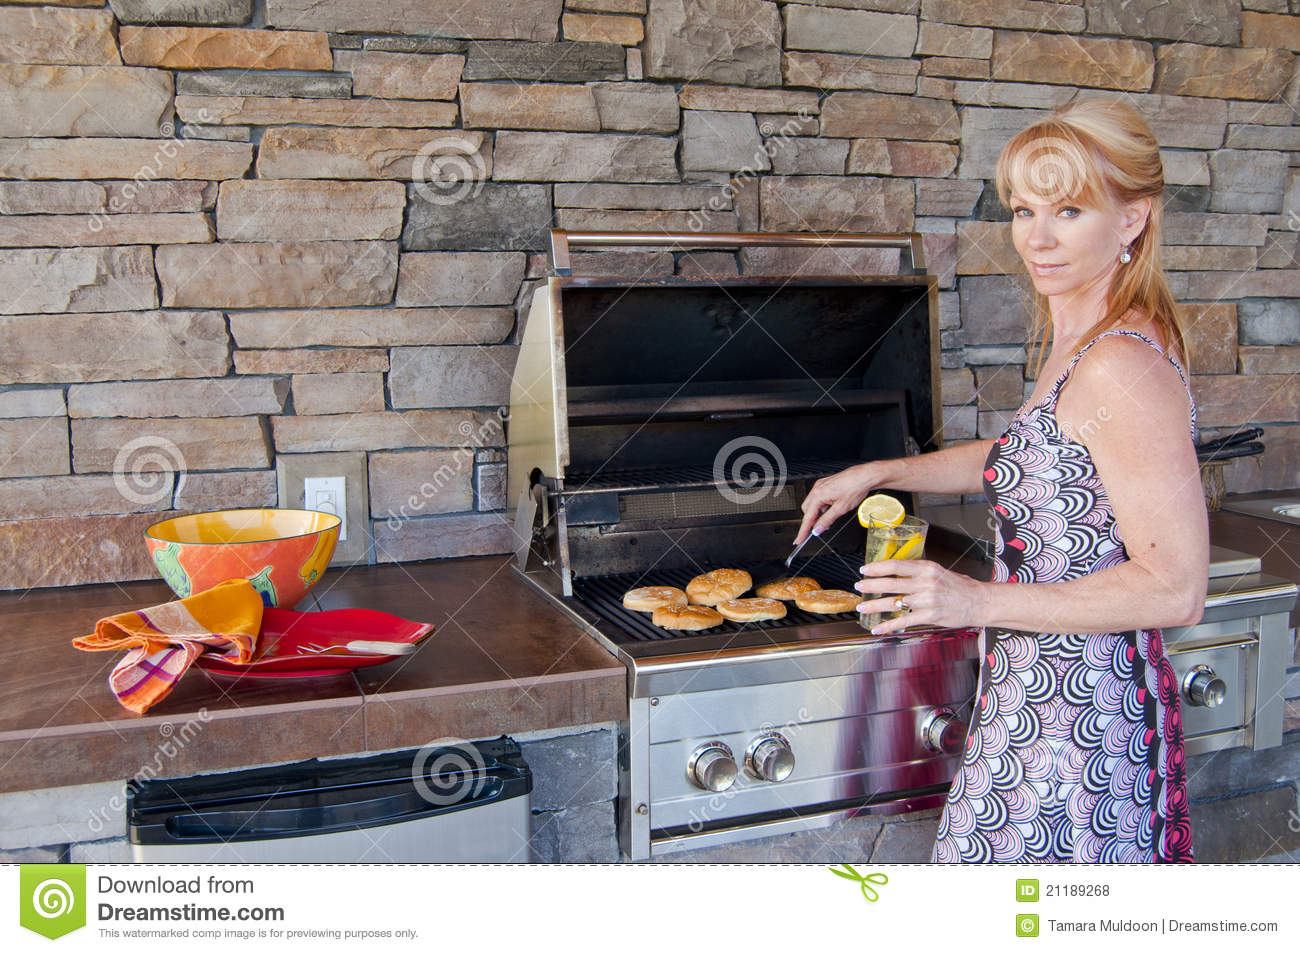 Woman using barbeque grill